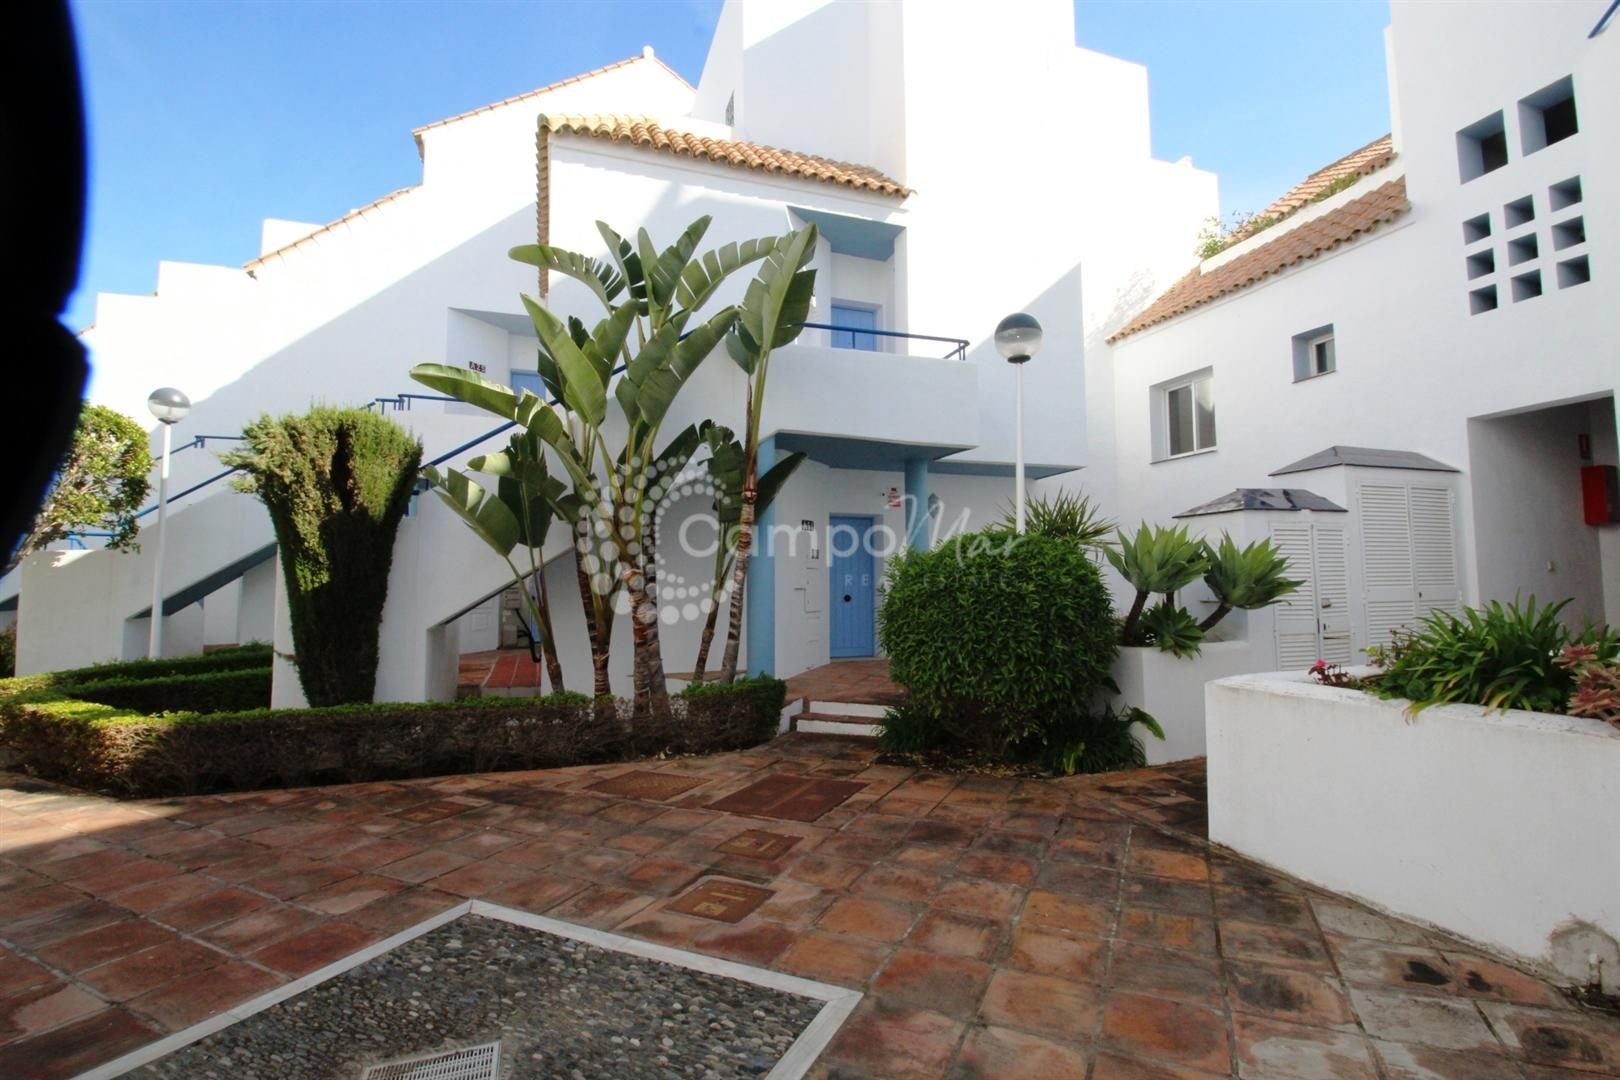 Ground Floor Apartment in Casares Playa, Casares